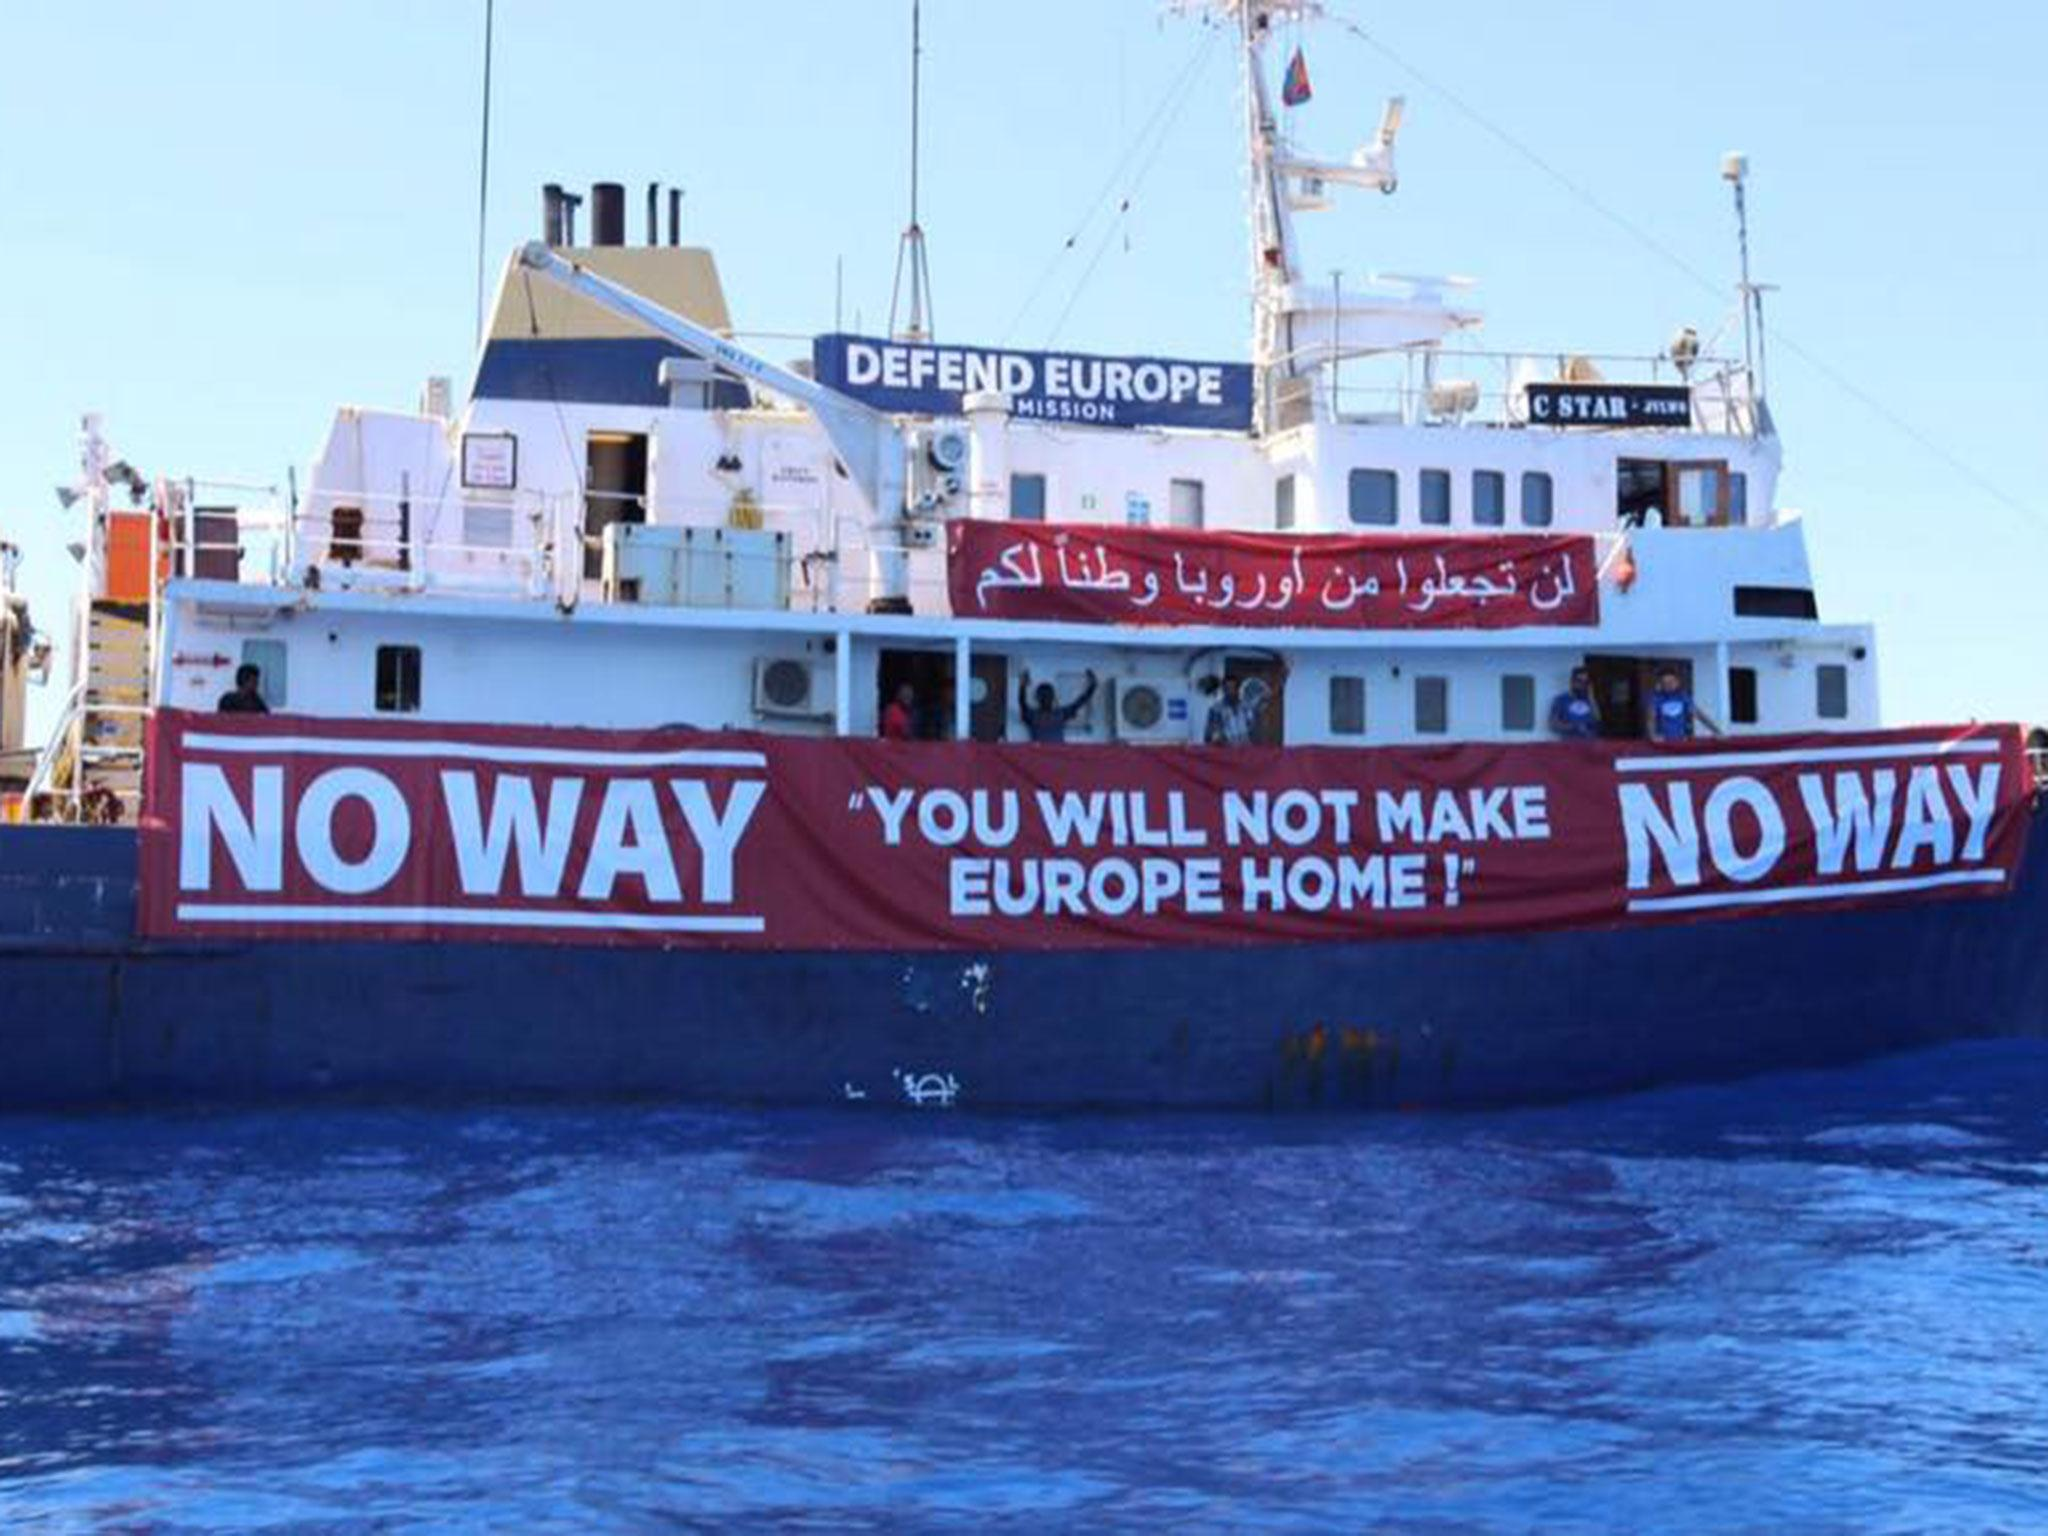 Refugee rescue boat sent to help far-right anti-immigrant